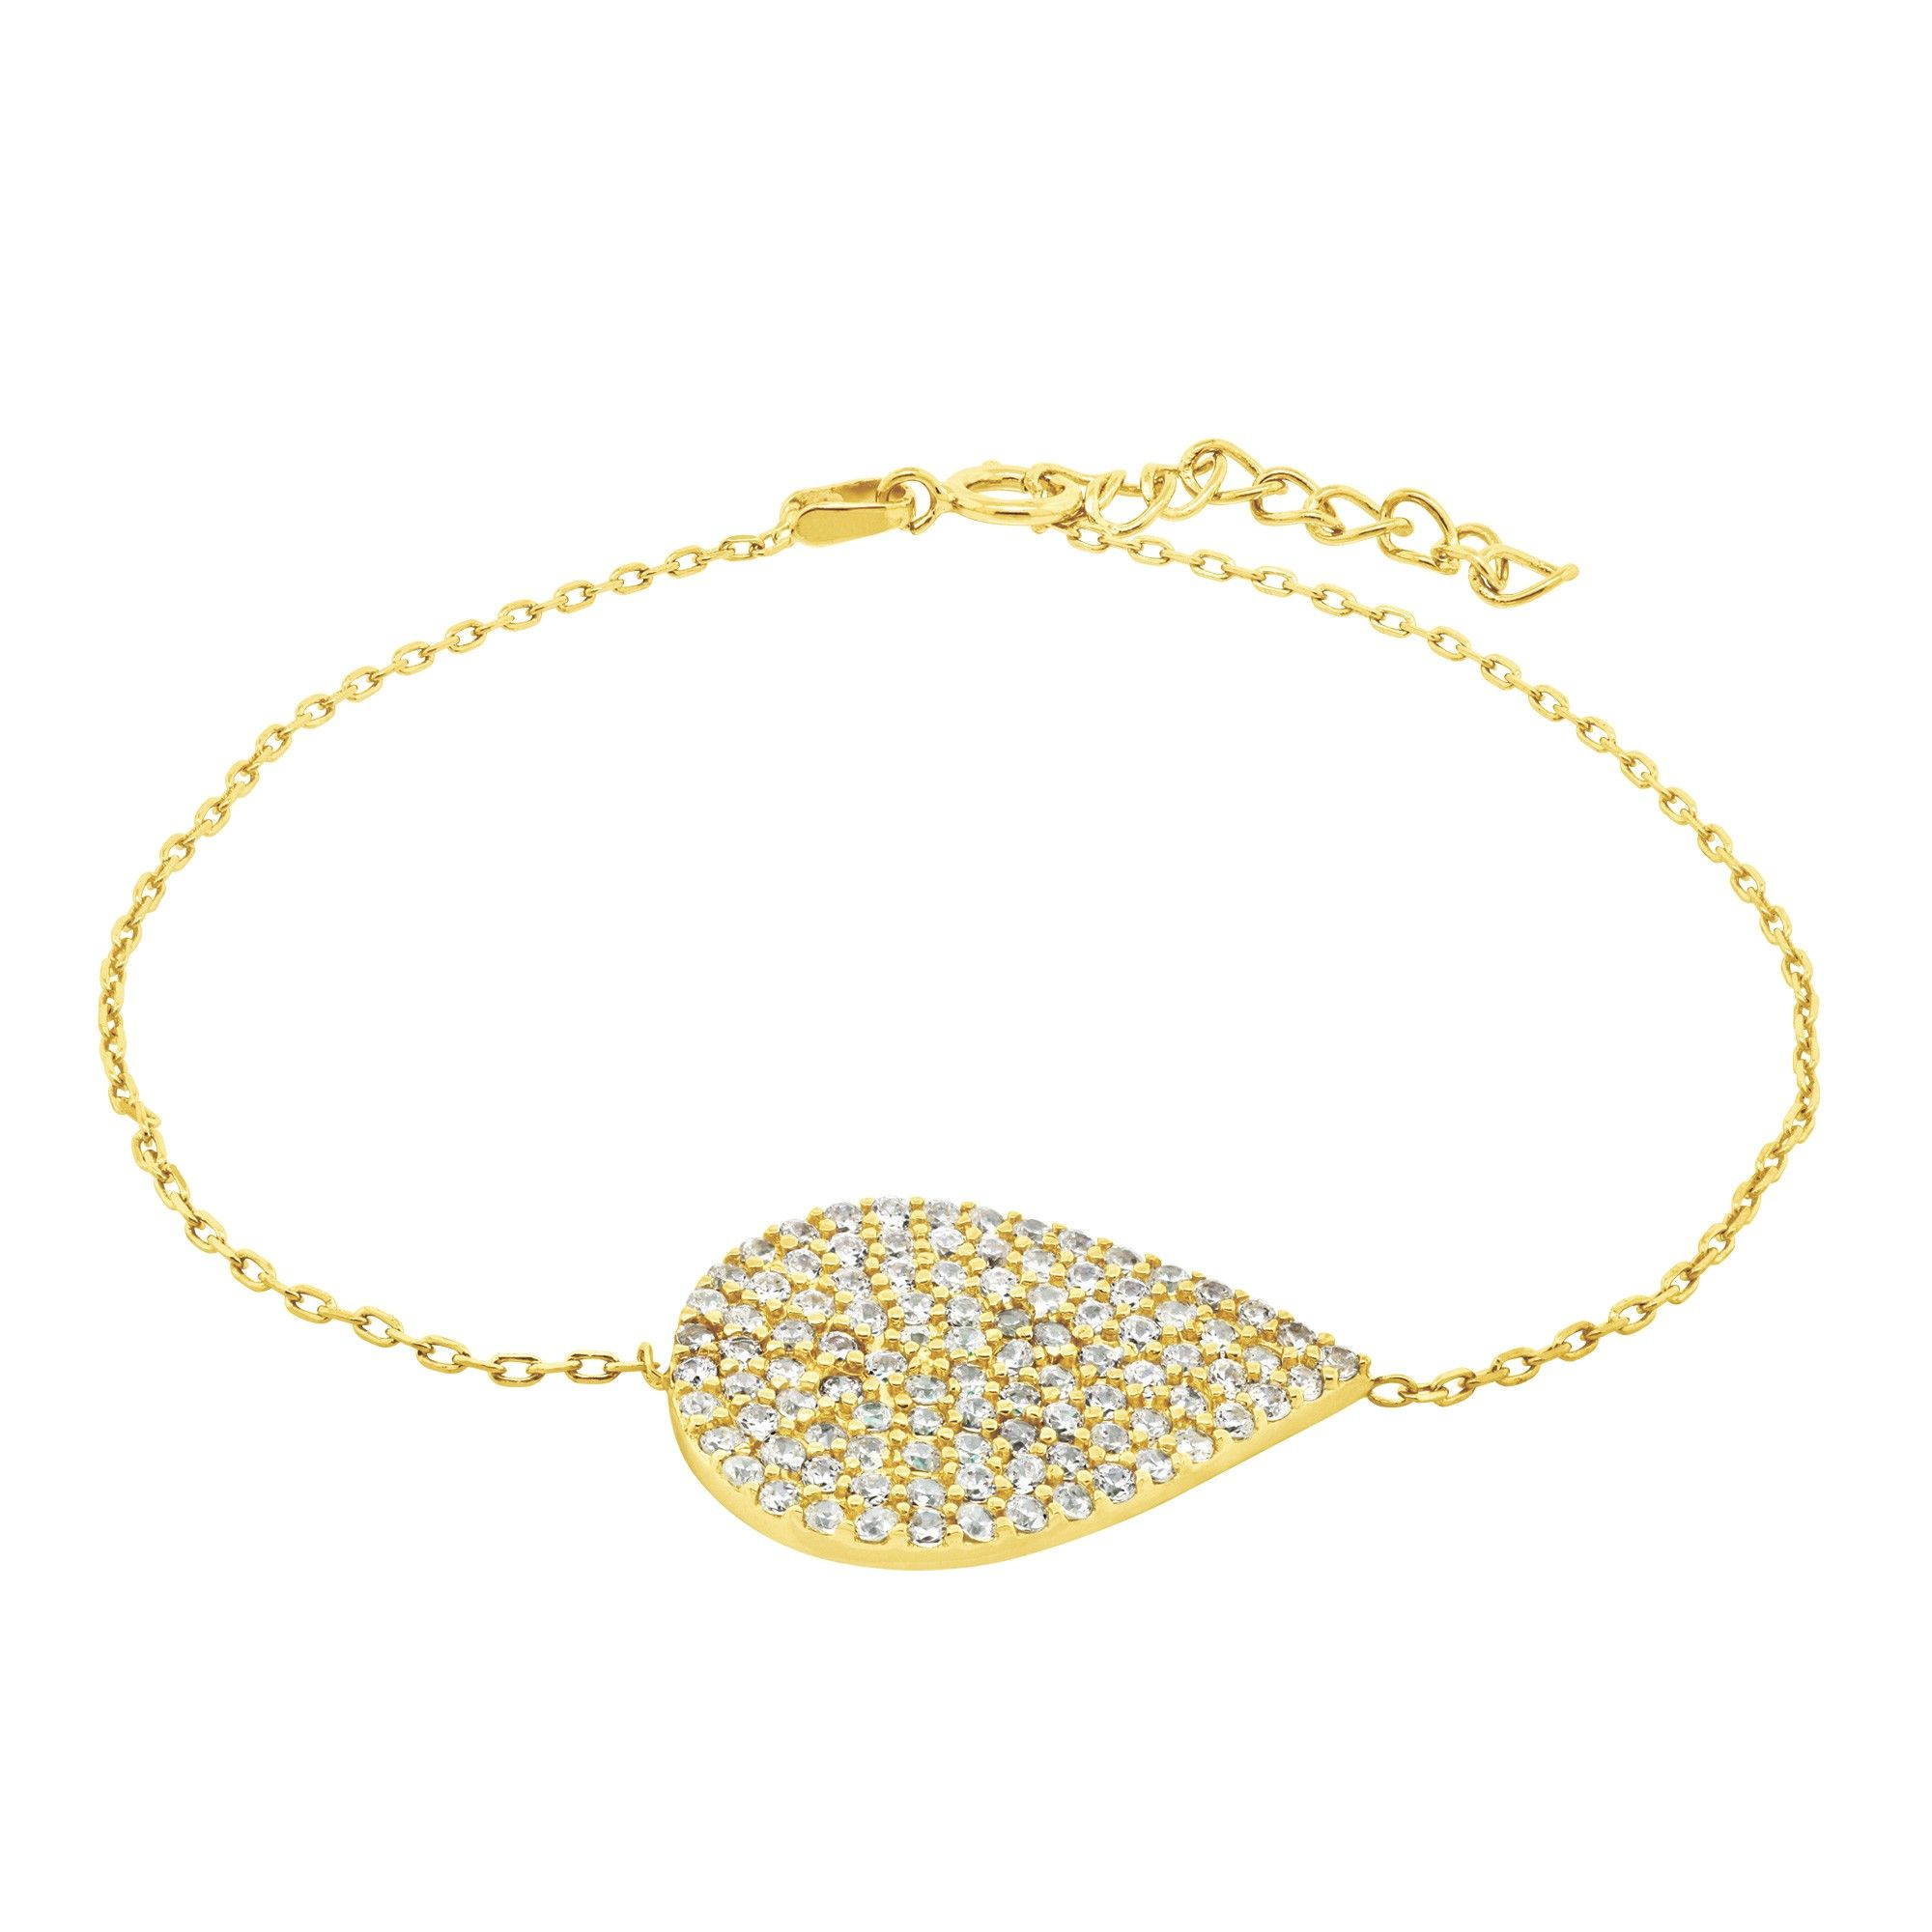 Vanessa - You'll love this pave-set, teardrop bracelet. A silky smooth chain wraps your wrist and showcases the striking studded pear shape in the center. The bracelet fastens with a spring clasp and features a generous extender.   Total Carat Weight: 0.5 Metal Type: Sterling Silver or Yellow Gold Vermeil This item does not contain Diamond Nexus simulant stones.  This item is not part of our lifetime guarantee.  Product Model: LBXXST0010X